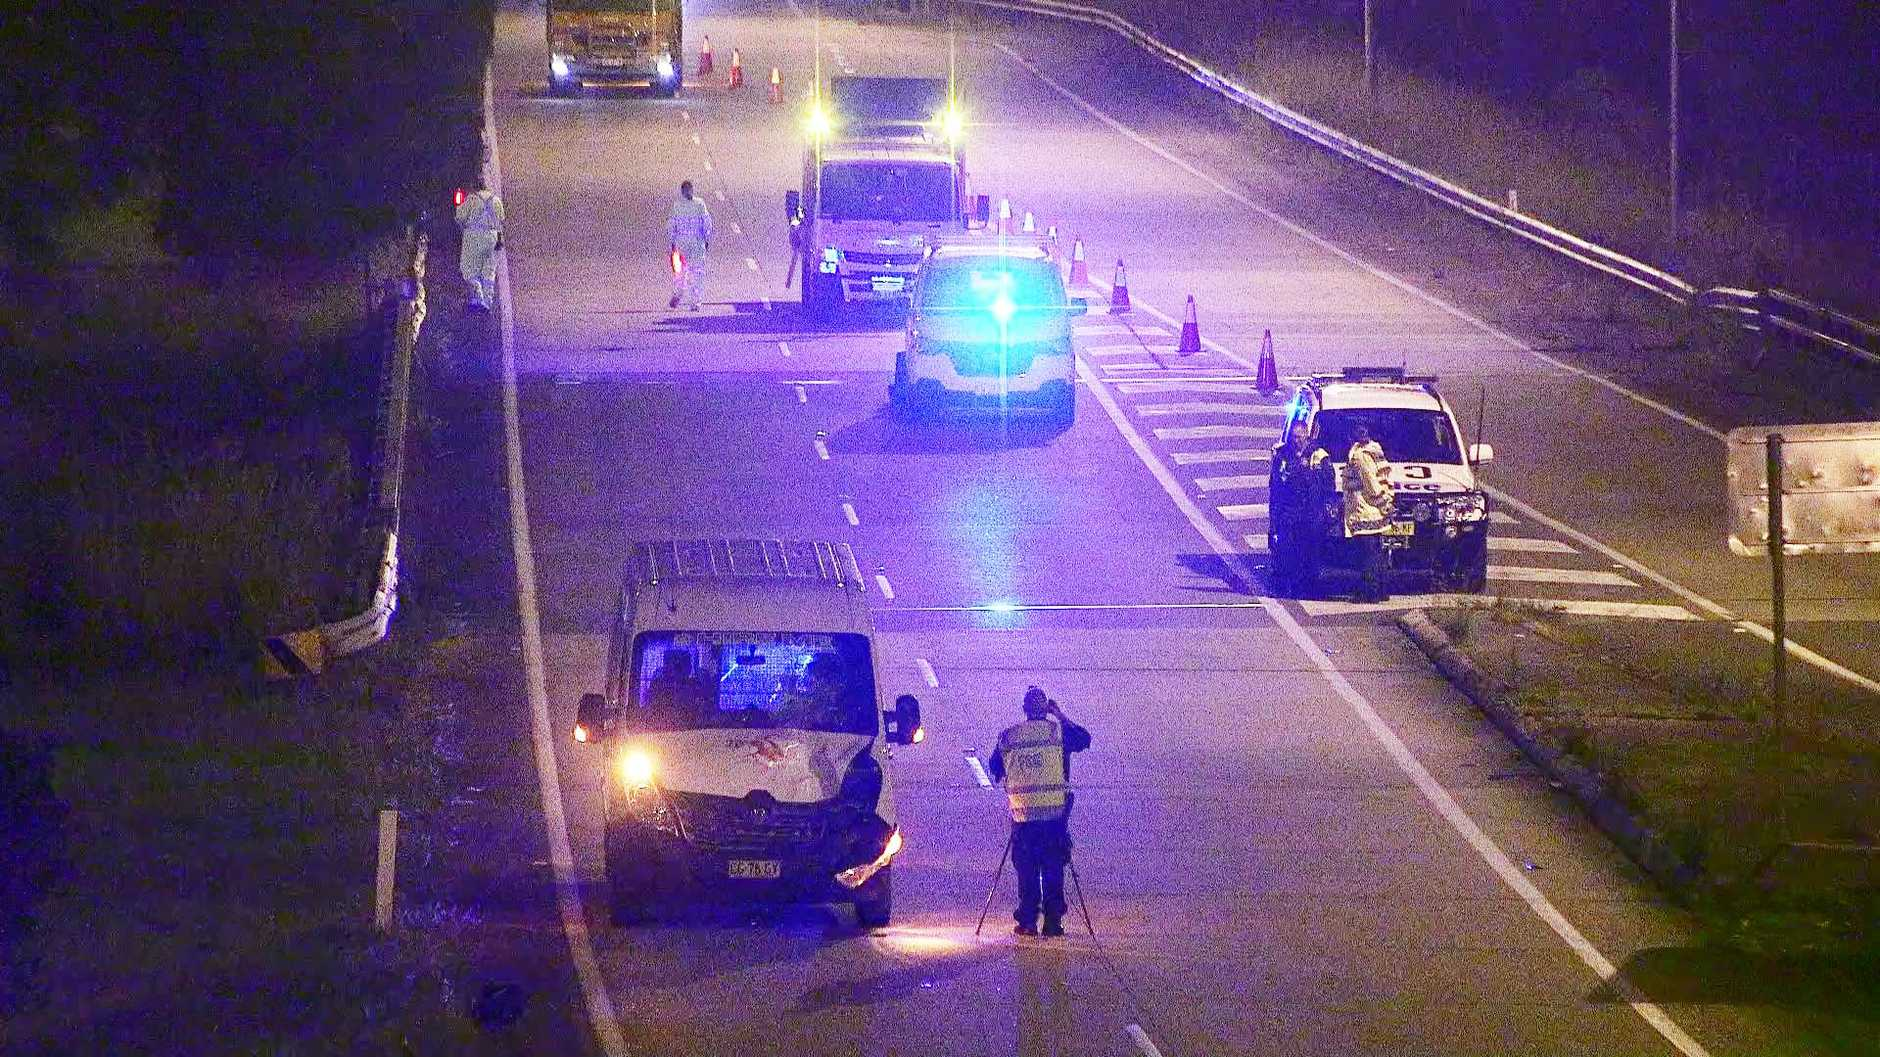 An 18-year-old man was hit by a van on the Pacific Highway in the early hours of Thursday November 12. Police established a crime scene and the man was taken to Coffs Harbour Hospital where he was later flown to John Hunter Hospital in Newcastle.